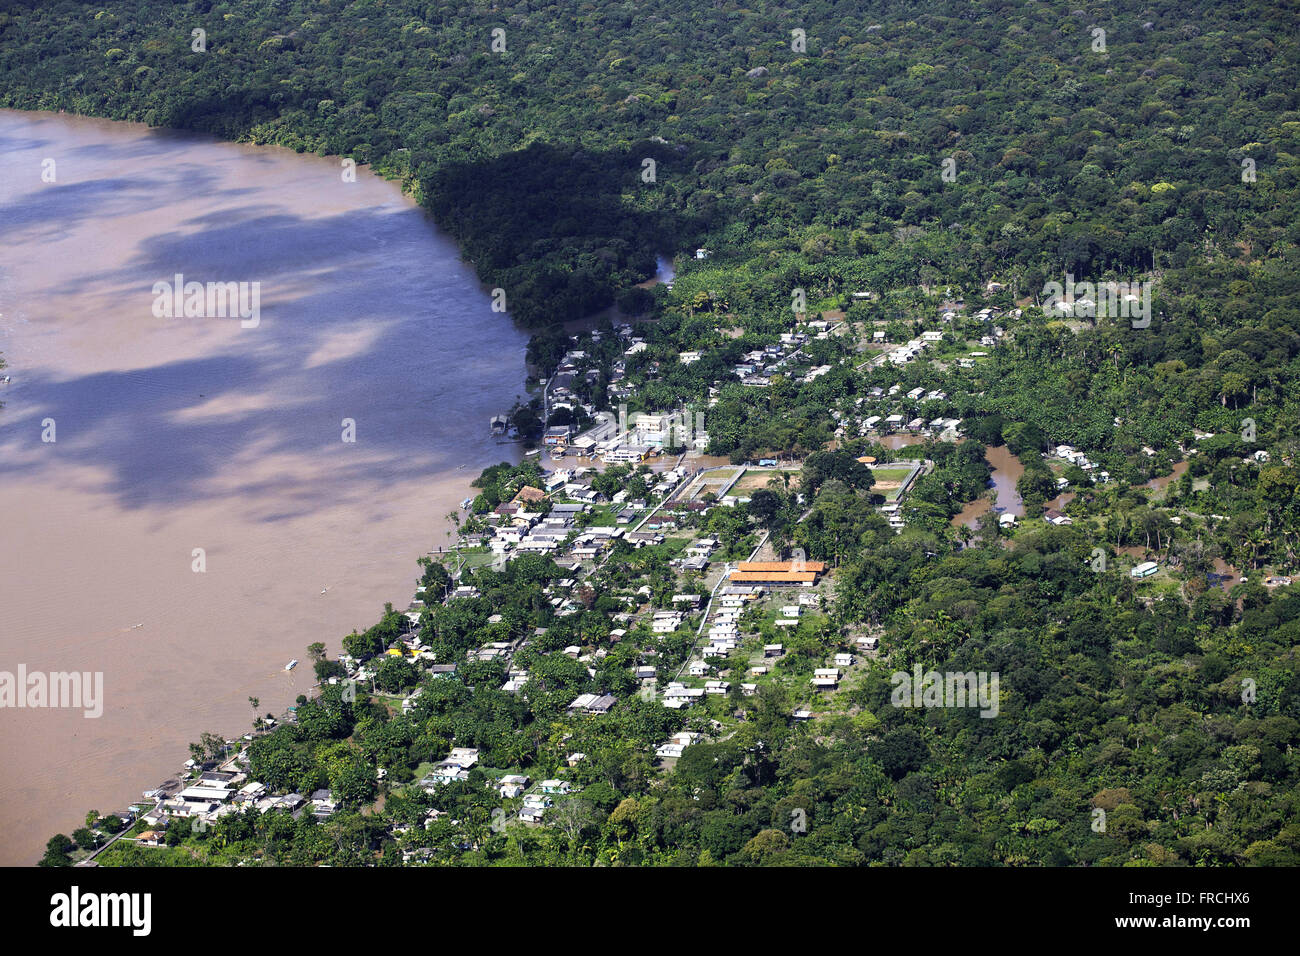 Aerial view of Vila Progresso - Brig Island - Archipelago of Bailique - Stock Image